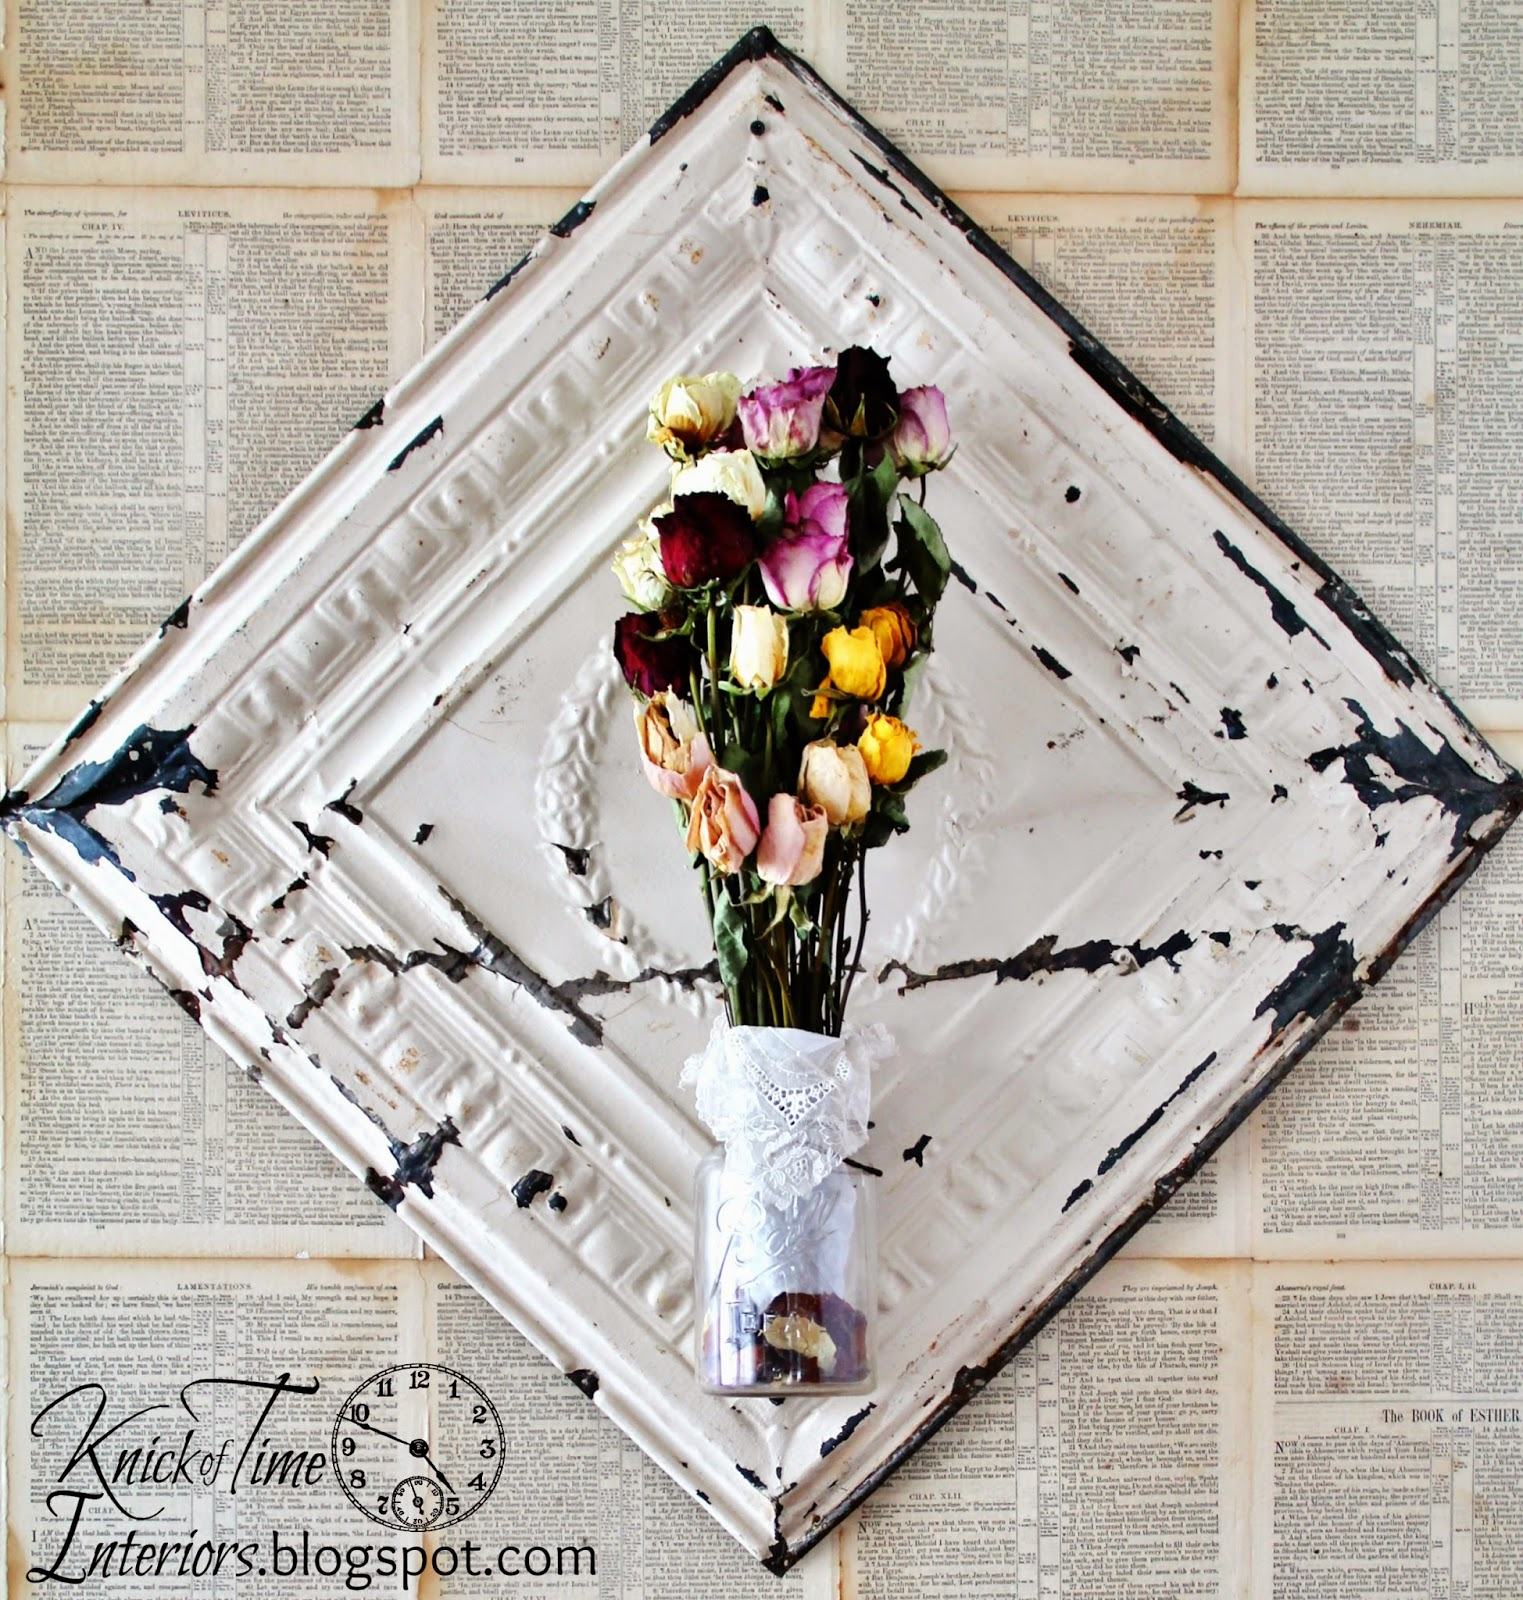 Repurposed Ball Jar Antique Ceiling Tile as Wall Flower Vase Display via Knick of Time